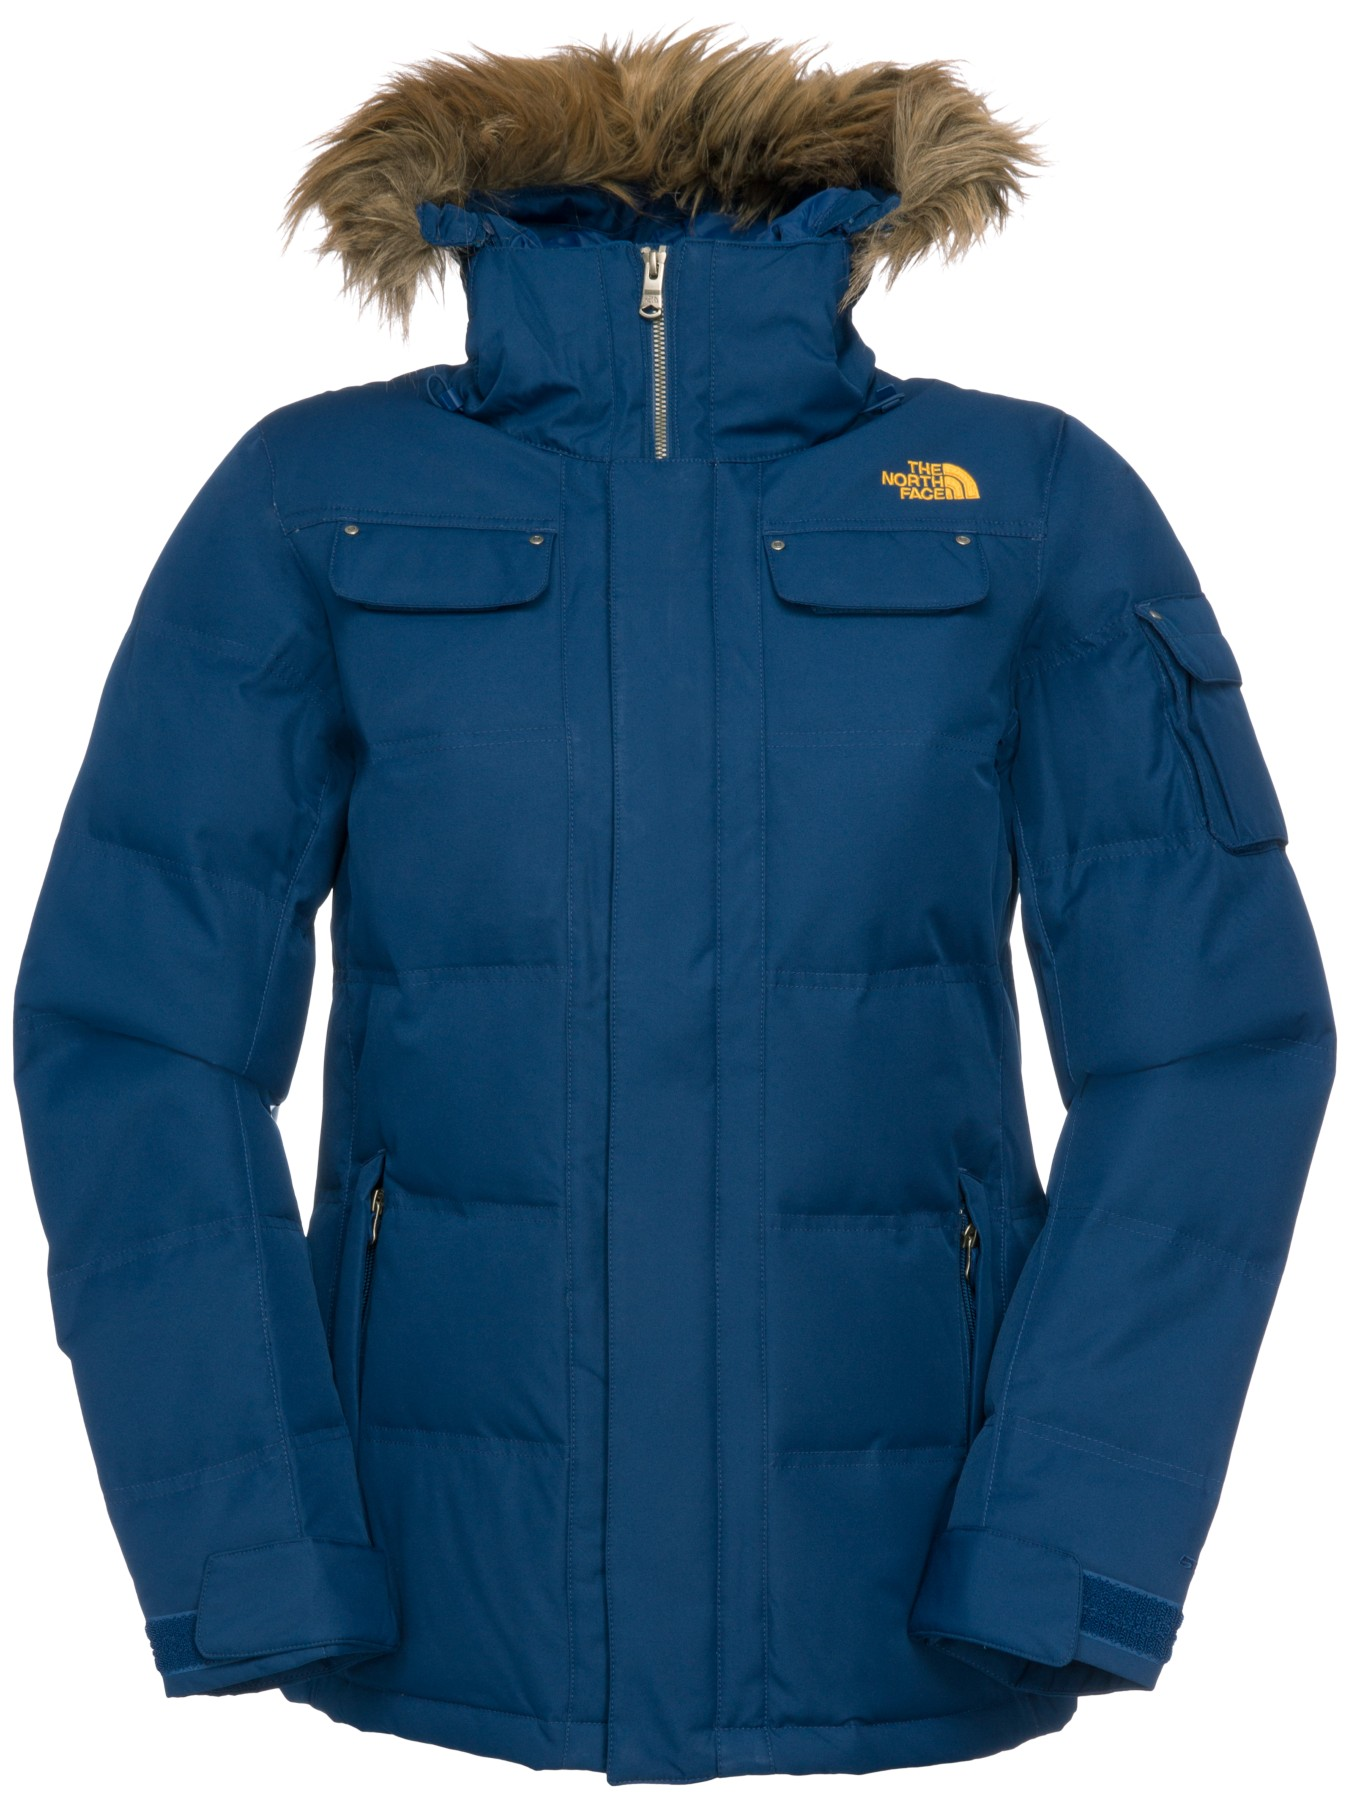 7e0b2a941 The North Face Baker Down Jacket in Blue - Lyst